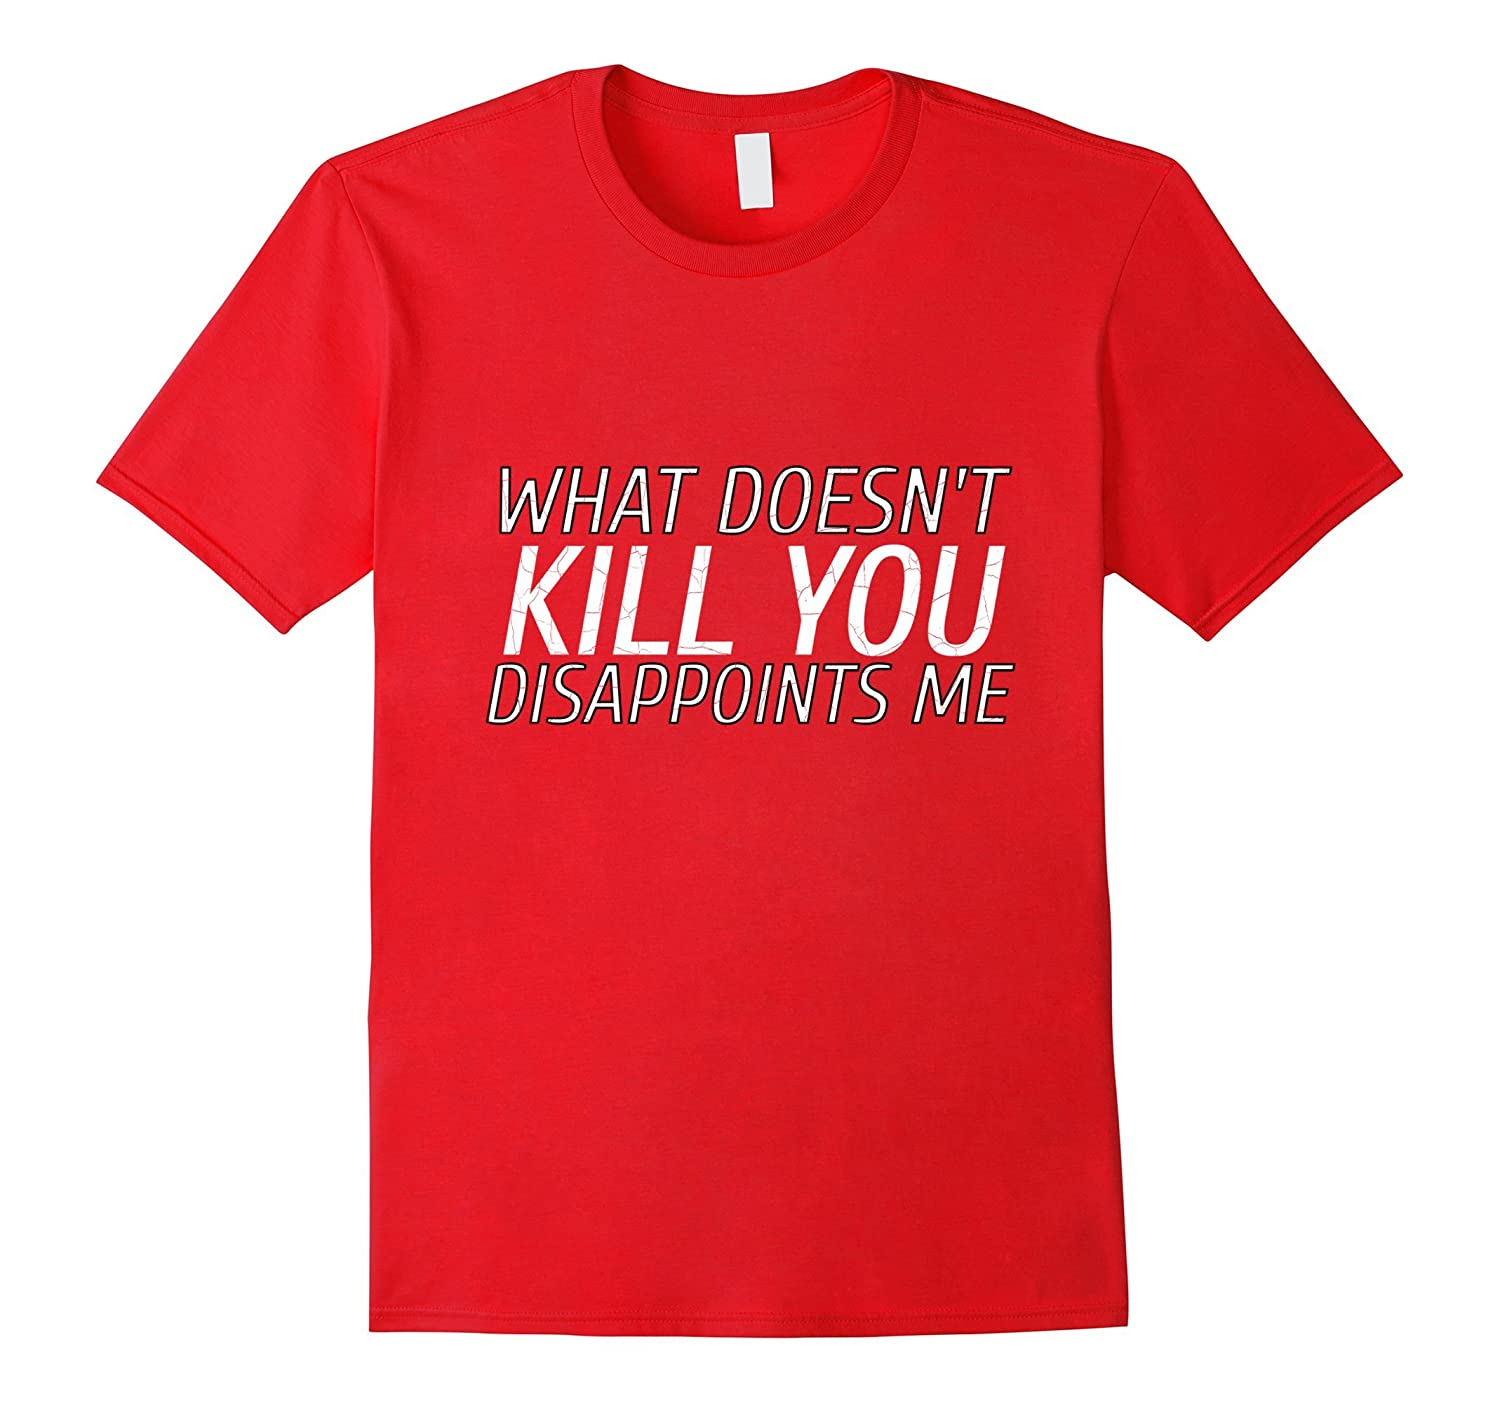 What doesn't kill you disappoints me T-Shirt Vintage Style-ah my shirt one gift